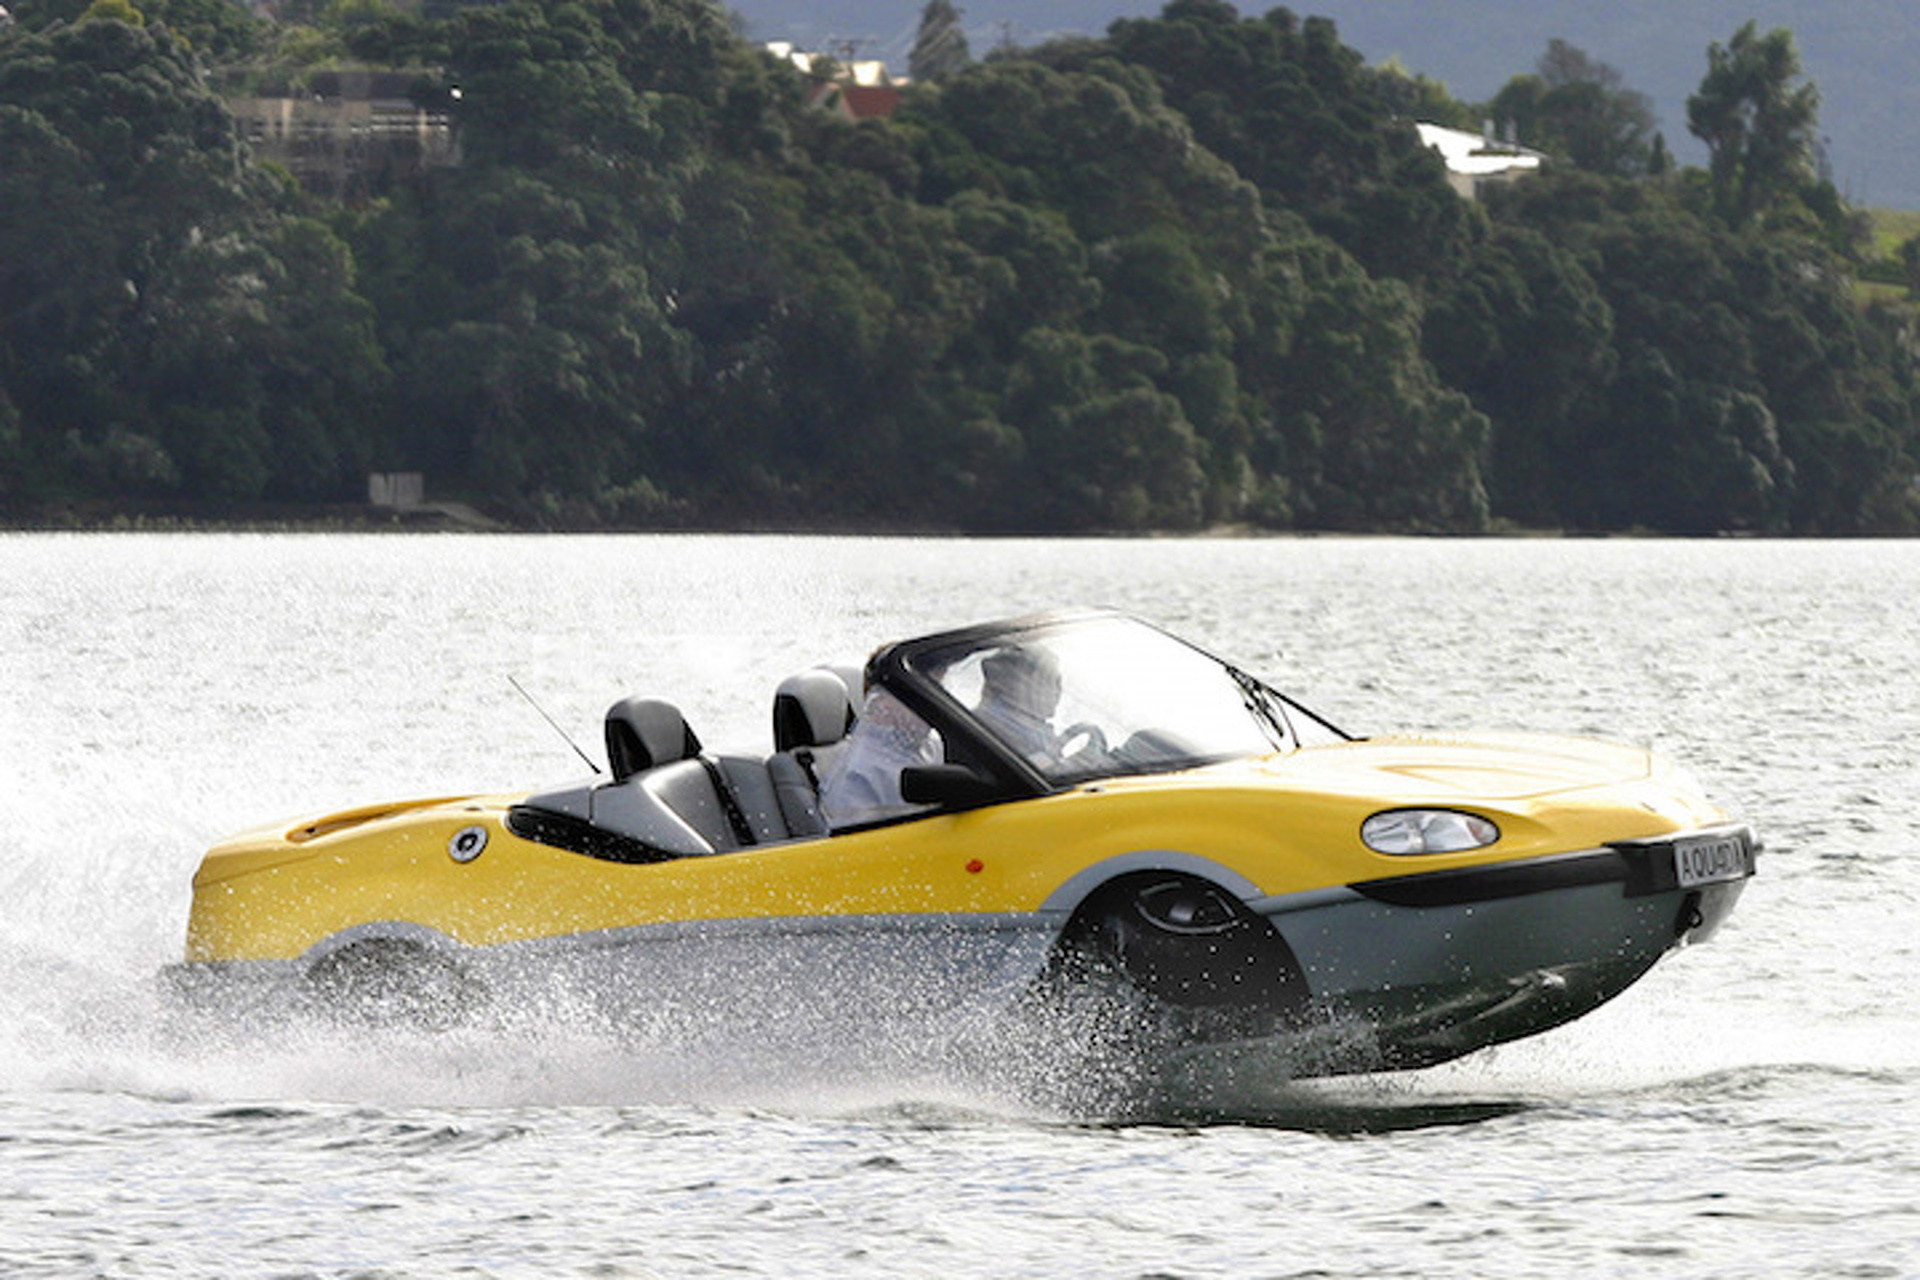 Amphicat for sale amphibious atv pictures - Gibbs Is Selling Off 20 Of Its Aquada Amphibious Sports Cars Product 2016 04 28 14 30 47